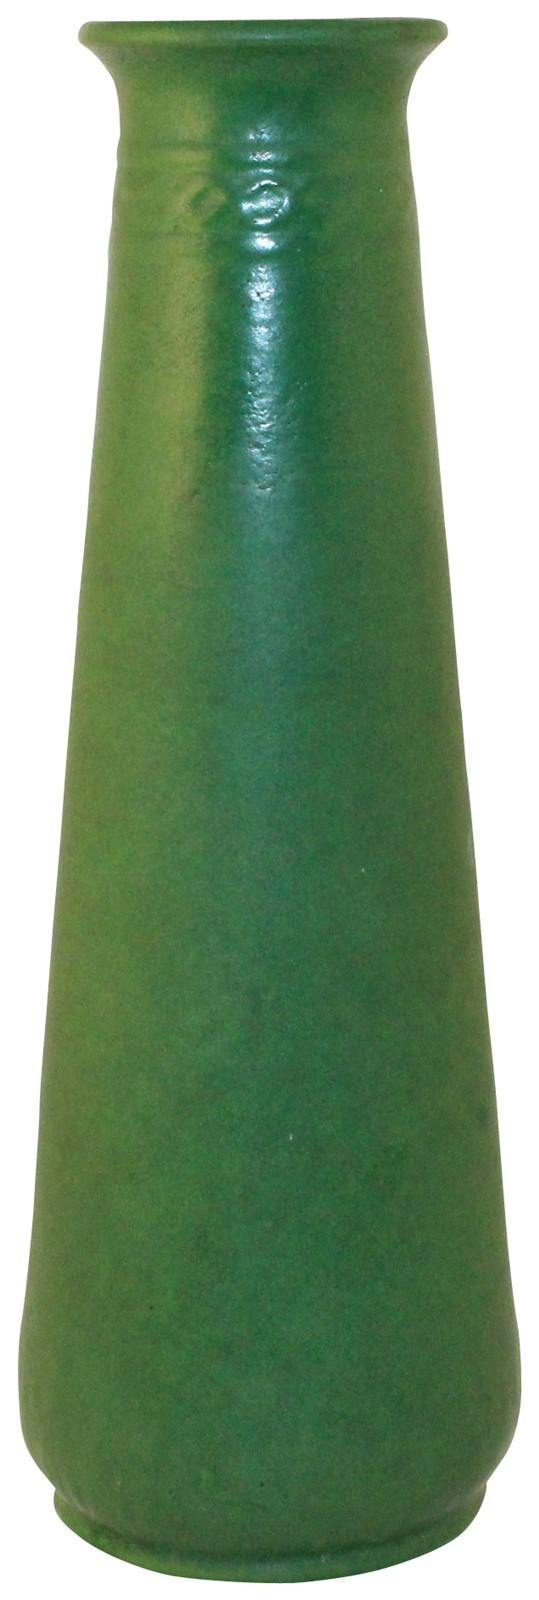 Roseville Pottery Egypto Matte Green Vase E41-12